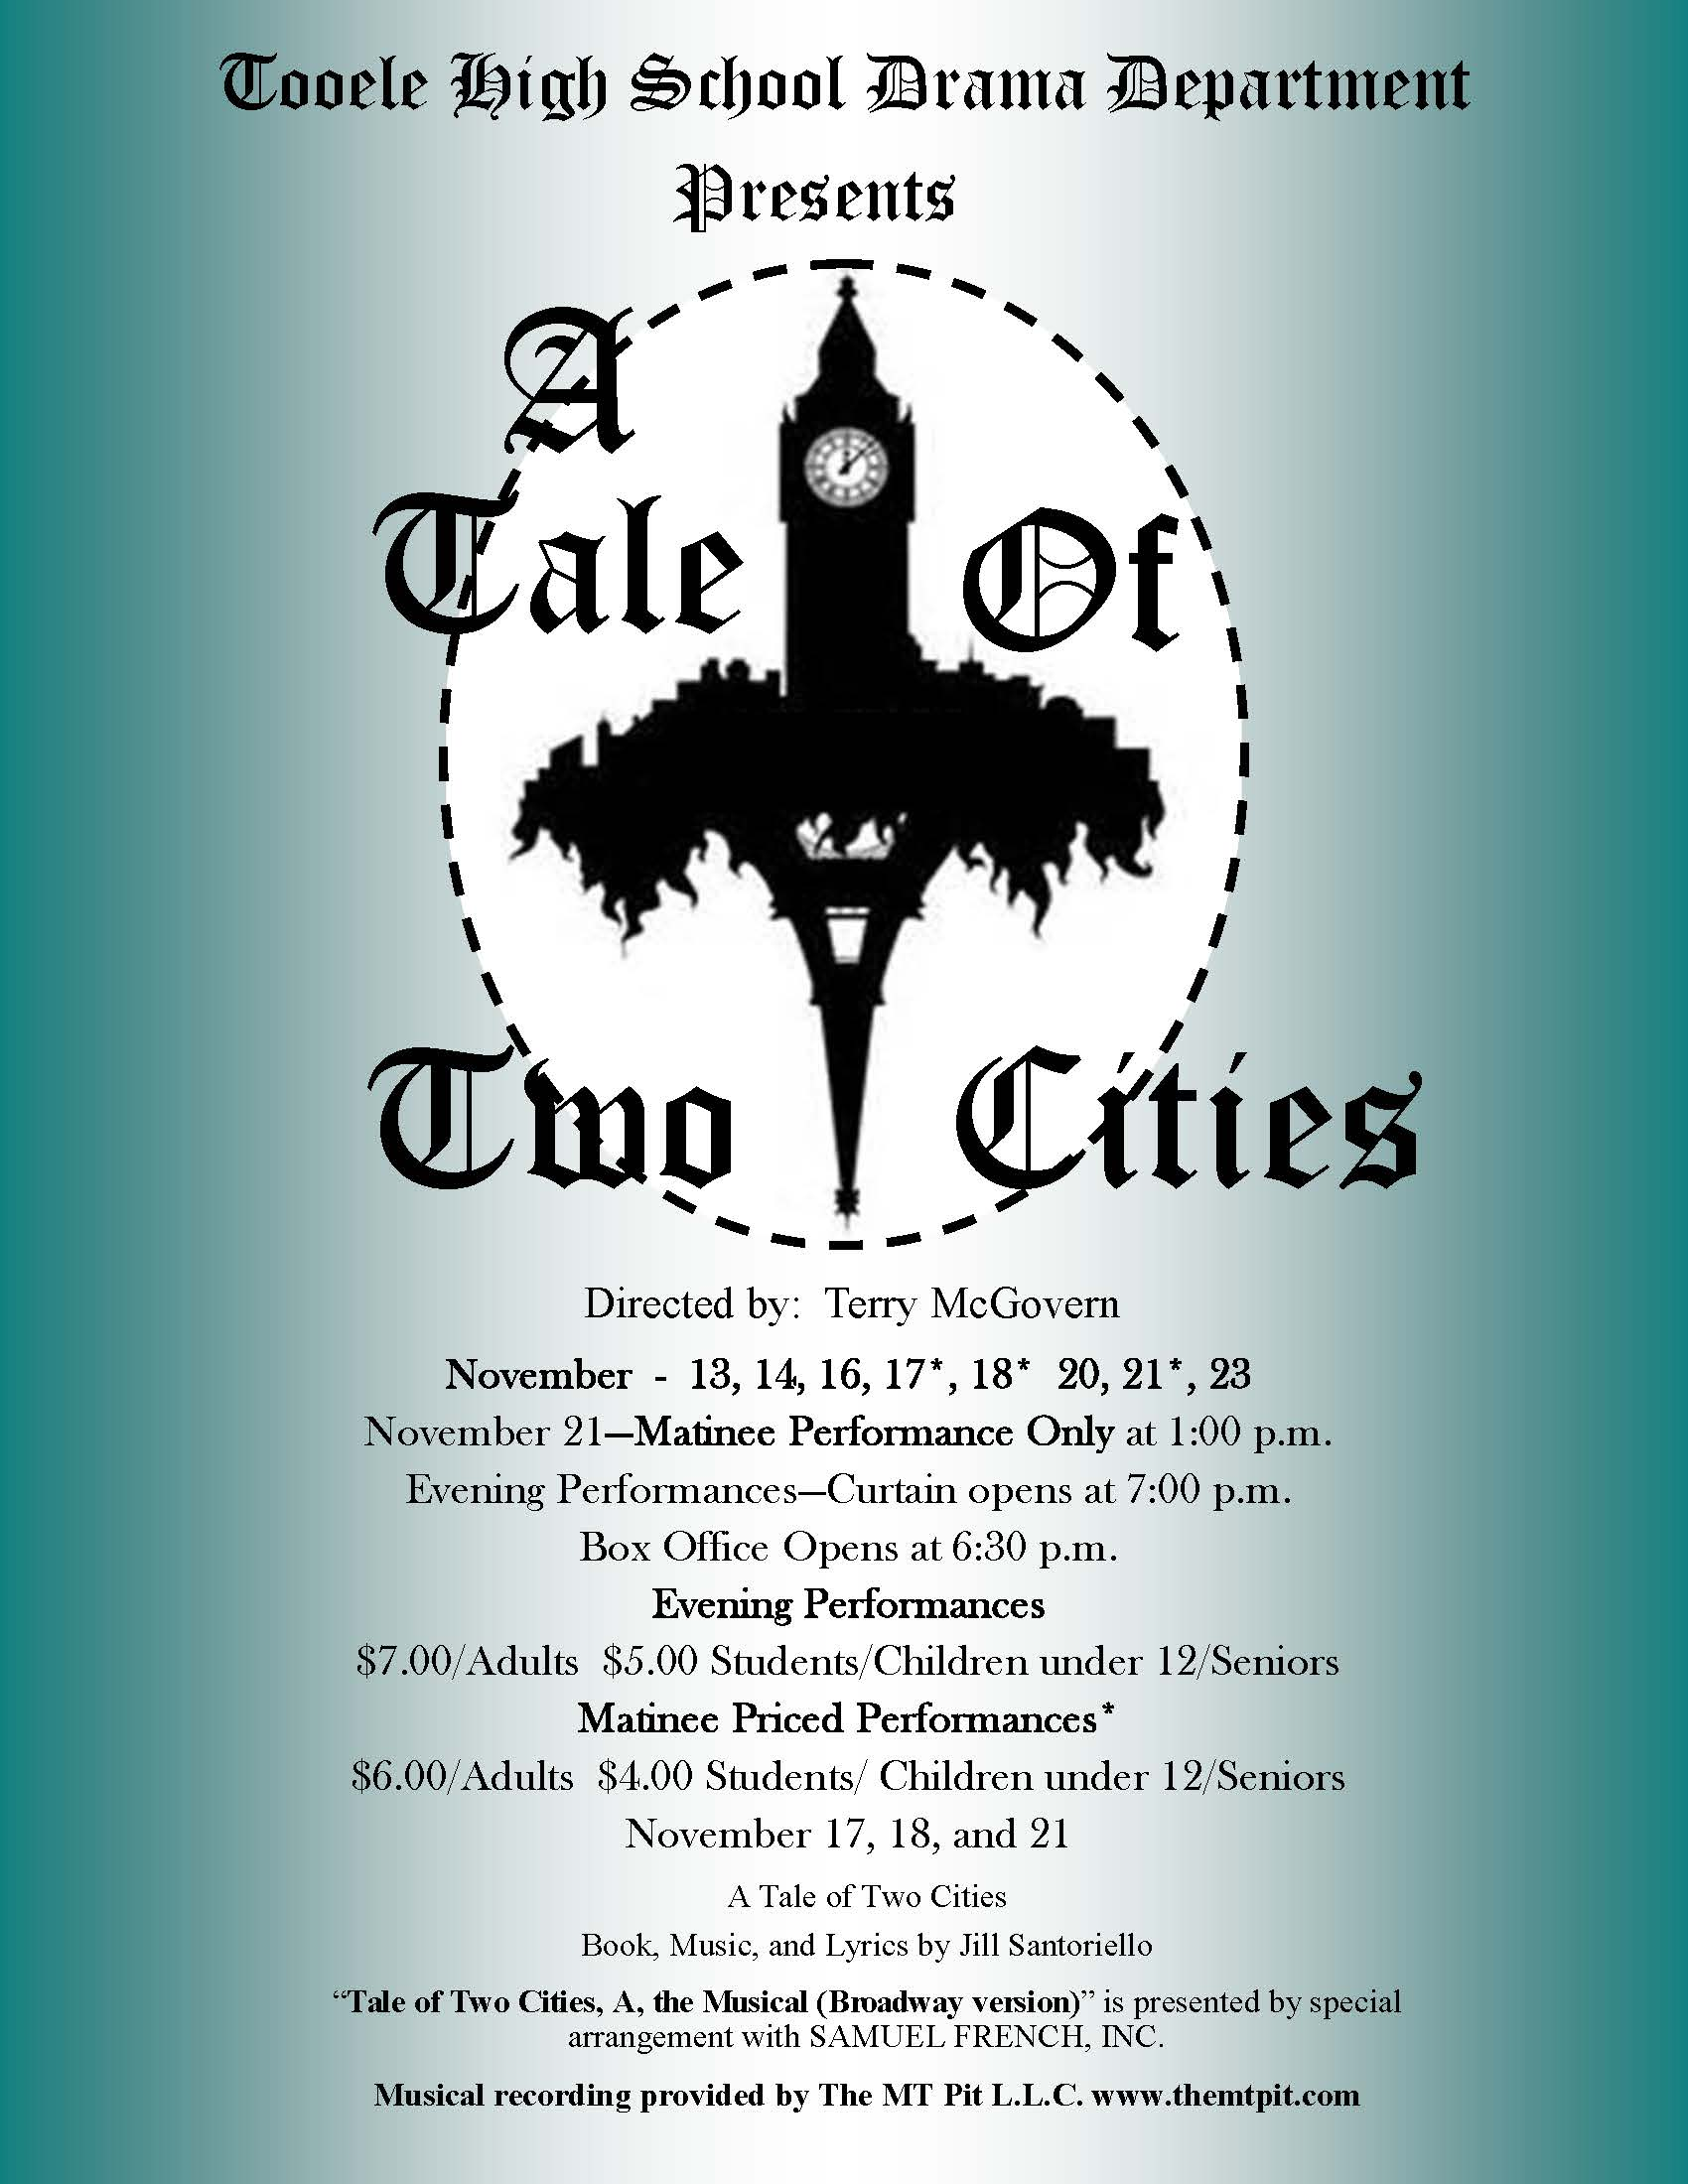 T H S Drama Presents A Tale Of Two Cities